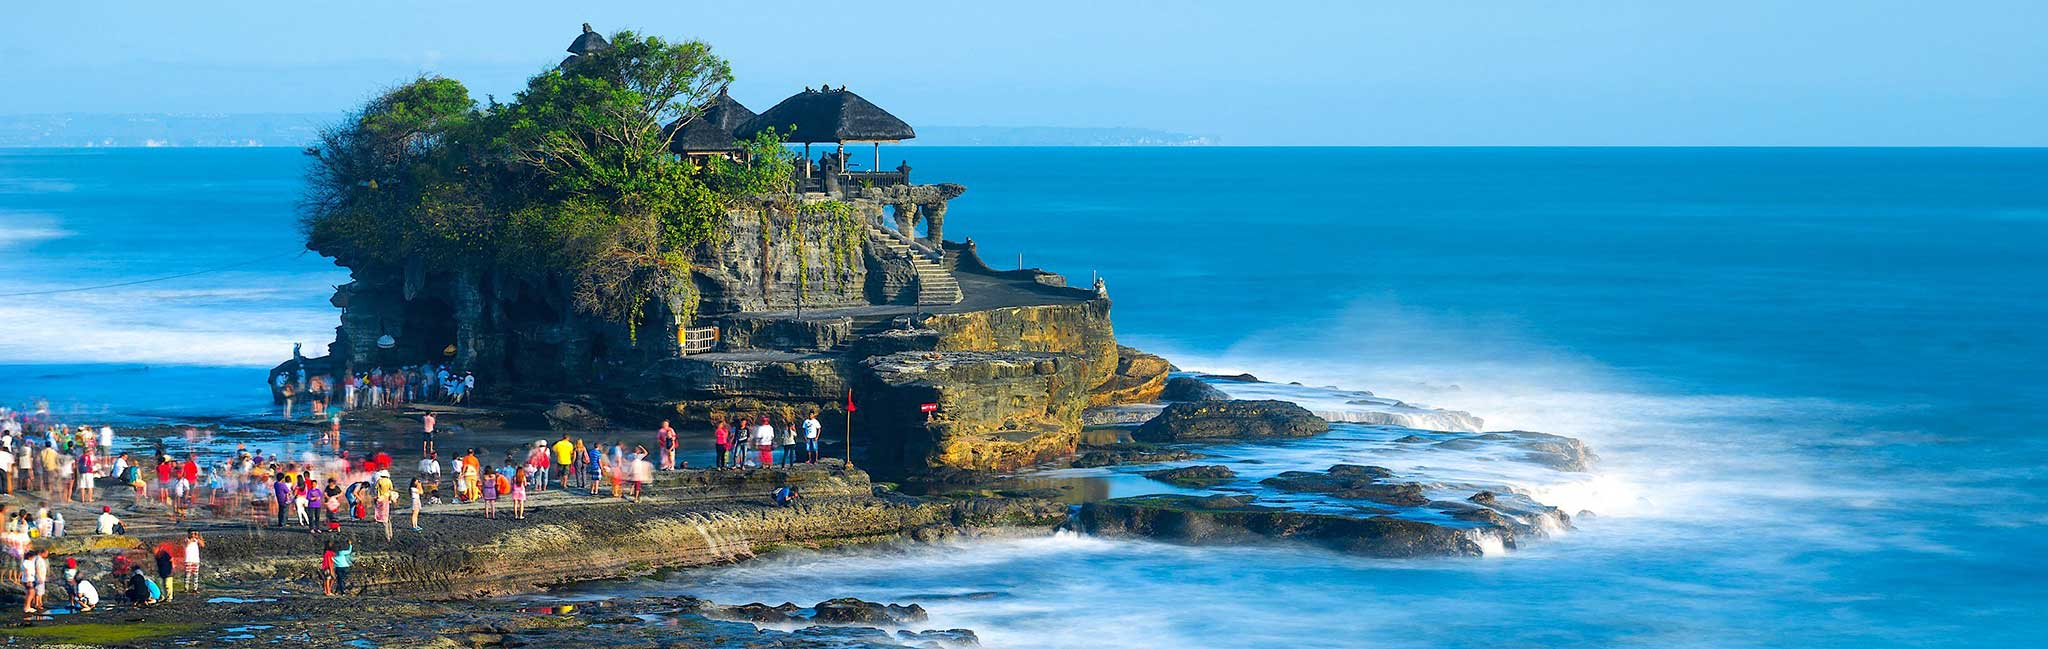 Bali Vacation Packages 2019 2020 Bali Tours Vacations